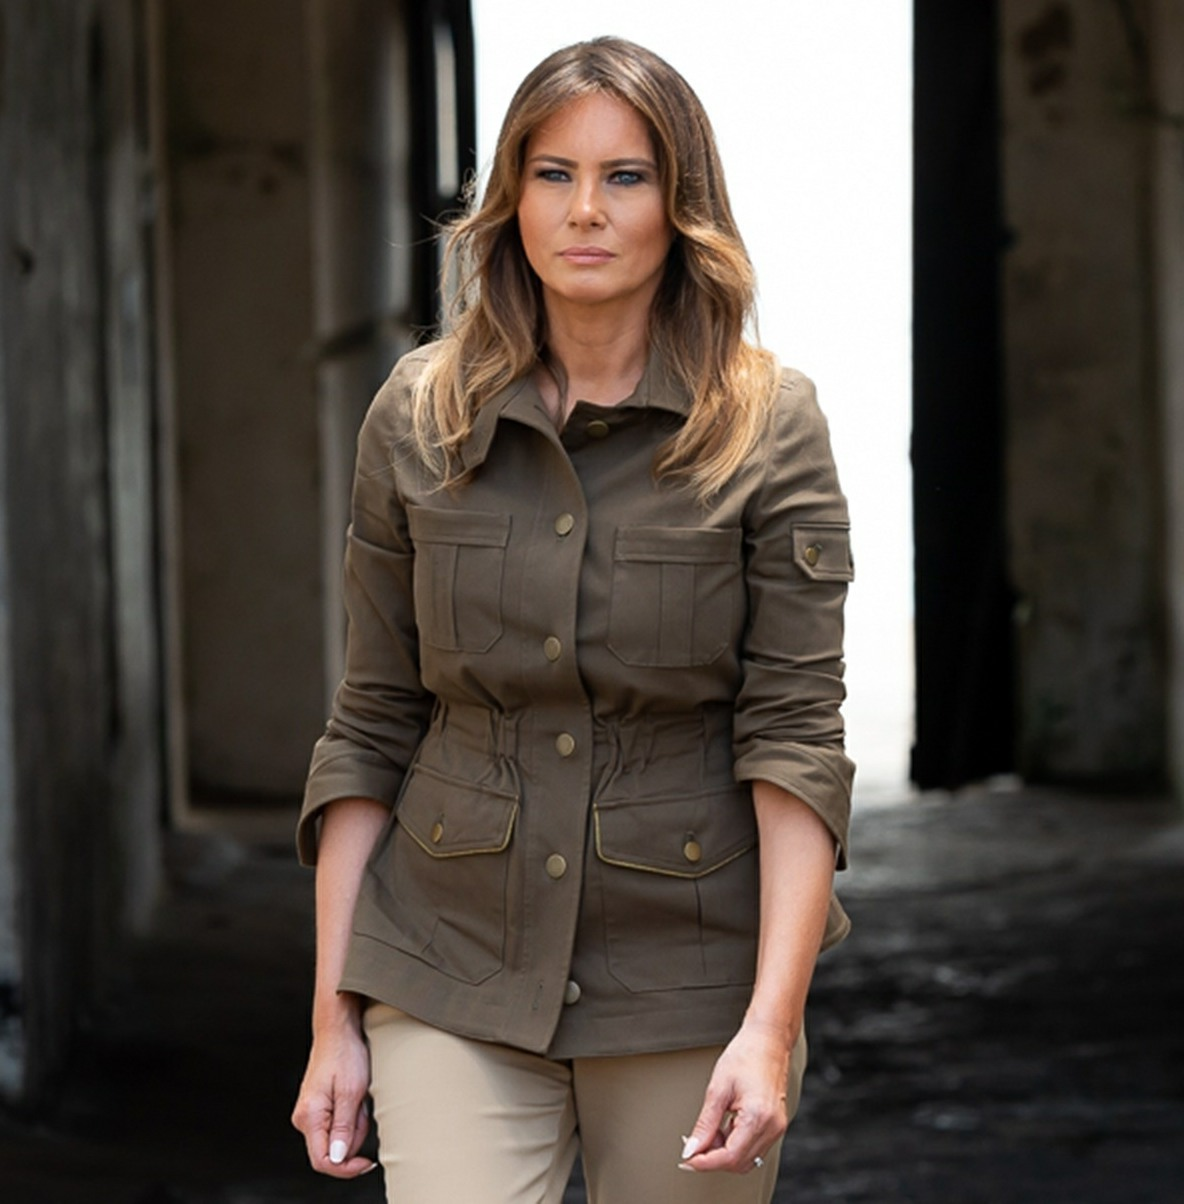 Melania Trump makes an official visit to Ghana